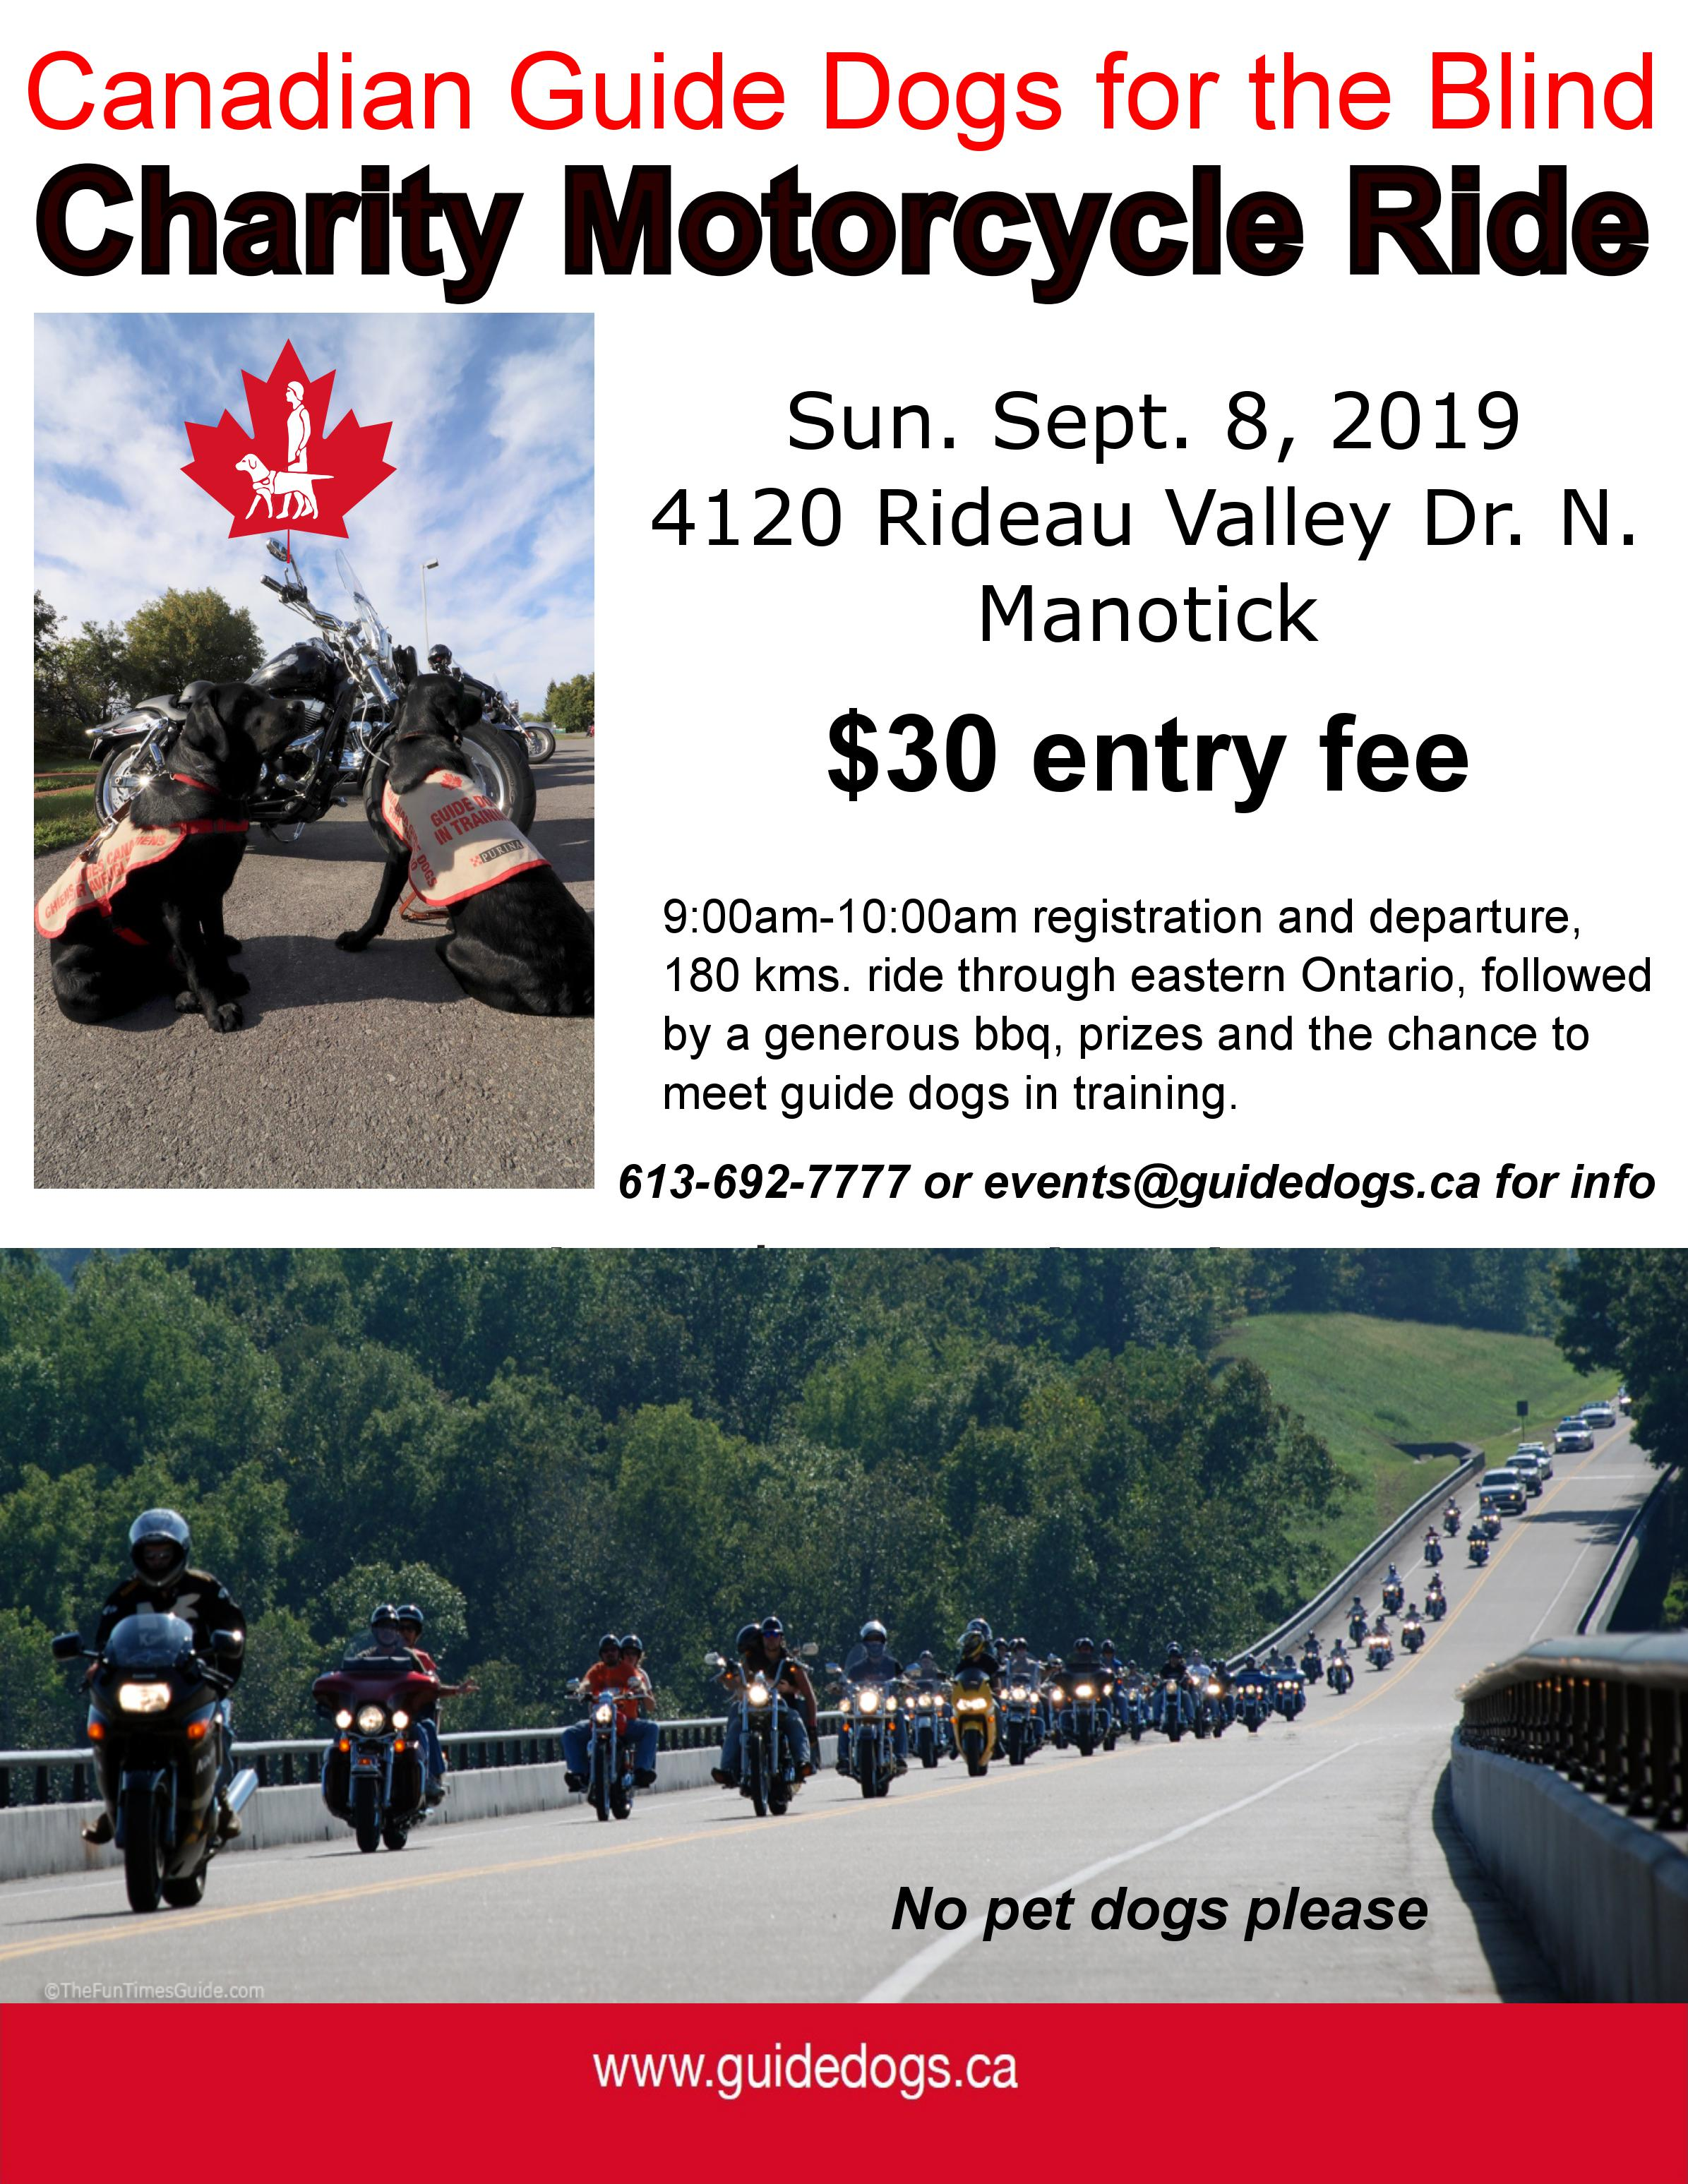 2019 MOTORCYCLE RIDE FLYER 1.jpg